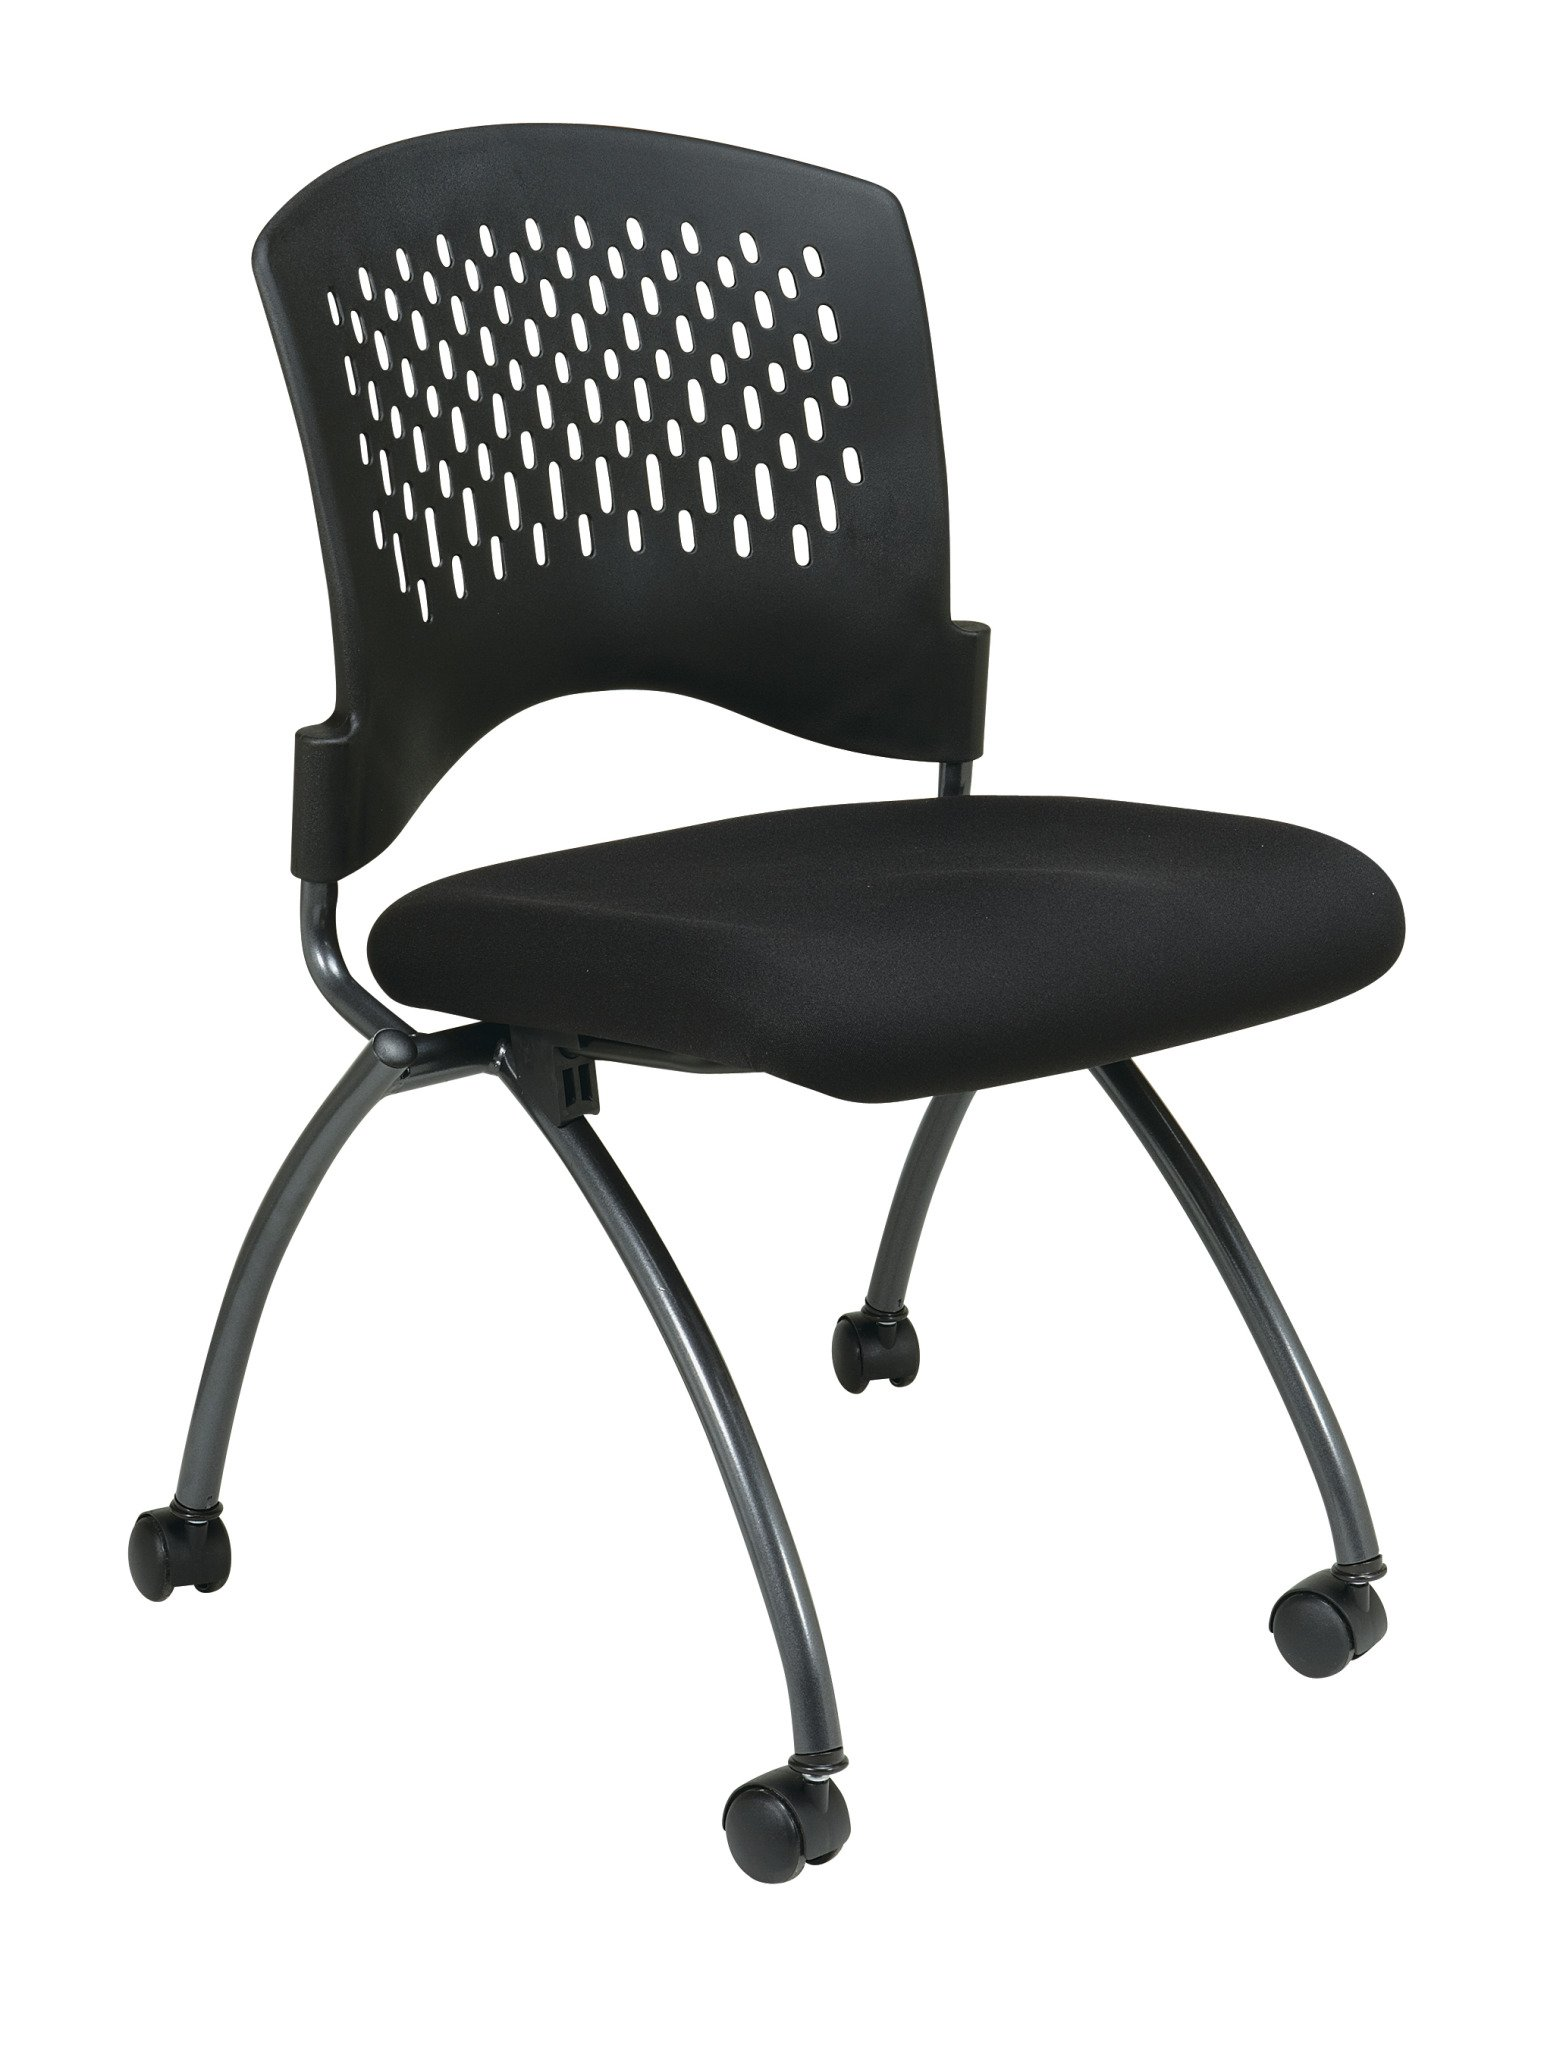 Office Star Deluxe Ventilated Plastic Back FreeFlex Coal Seat Armless Folding Chair with Casters, 2-Pack, Titanium Finish by Office Star